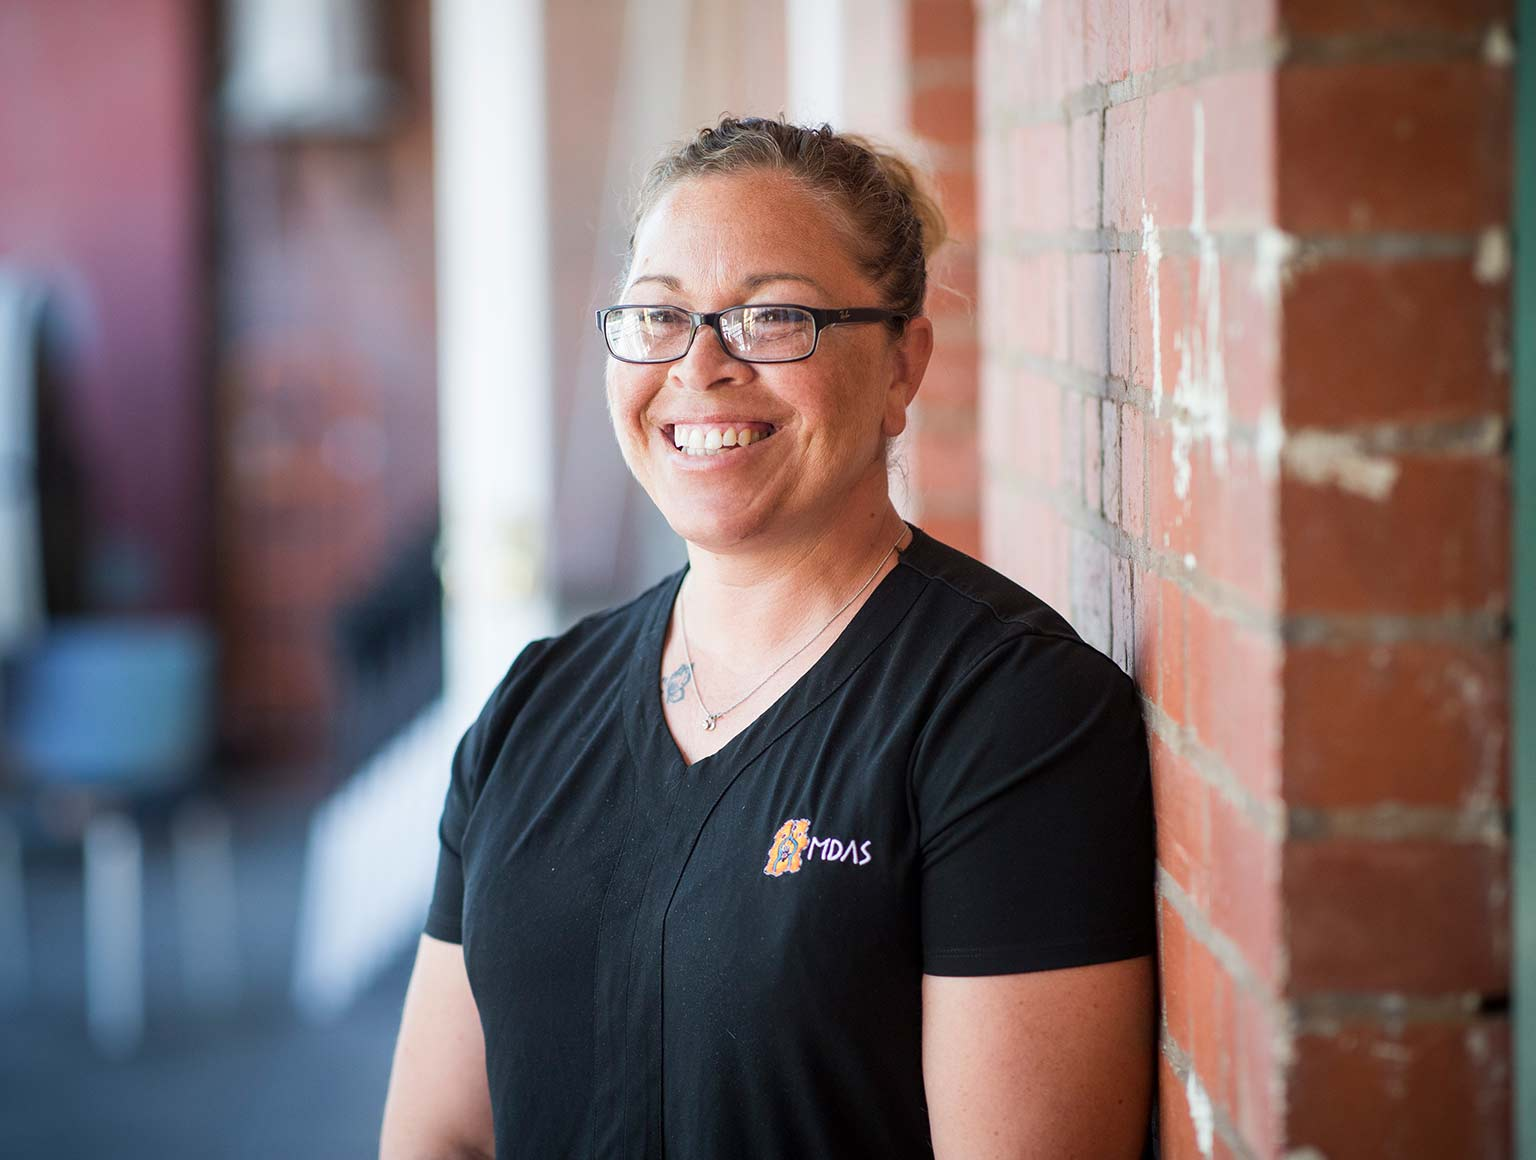 Photo of smiling woman with hair pulled back tightly and wearing glasses and a black T-shirt with an MDAS logo on it, she is standing outside against a red brick wall.